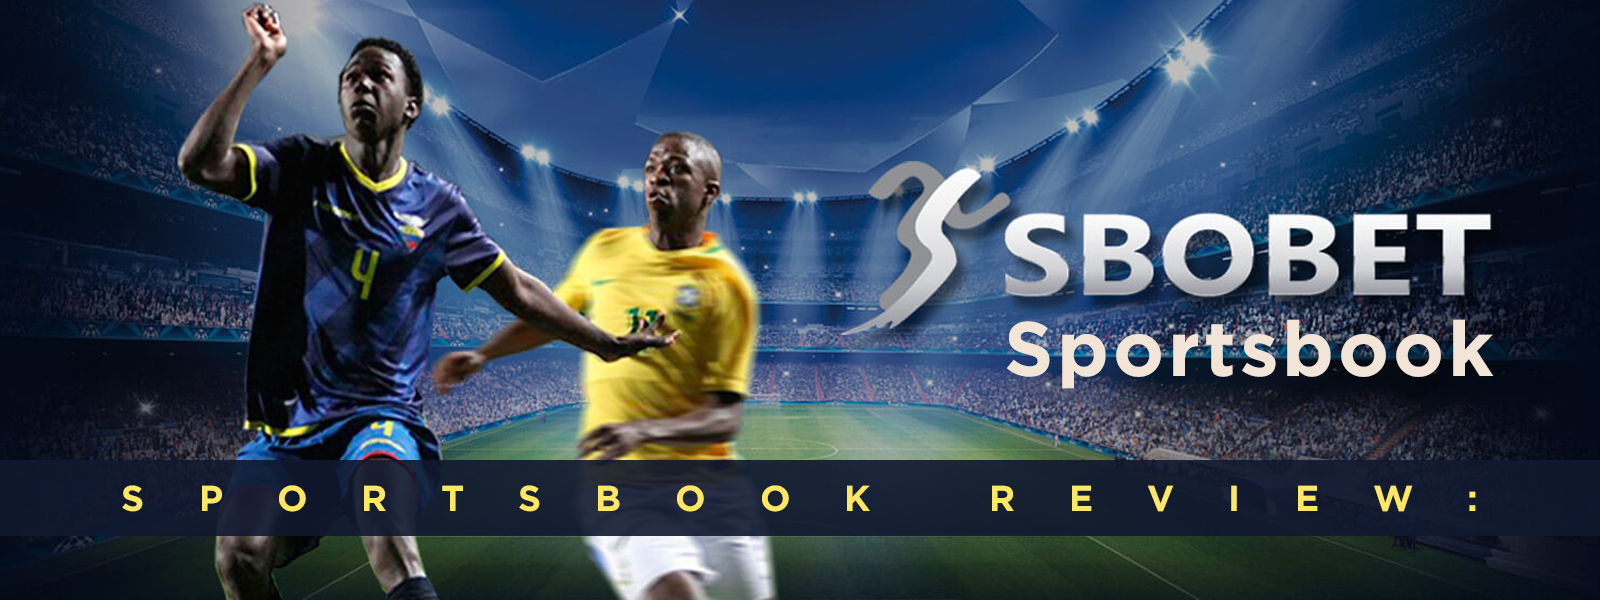 Sportsbook Review: SboBet Sportsbook